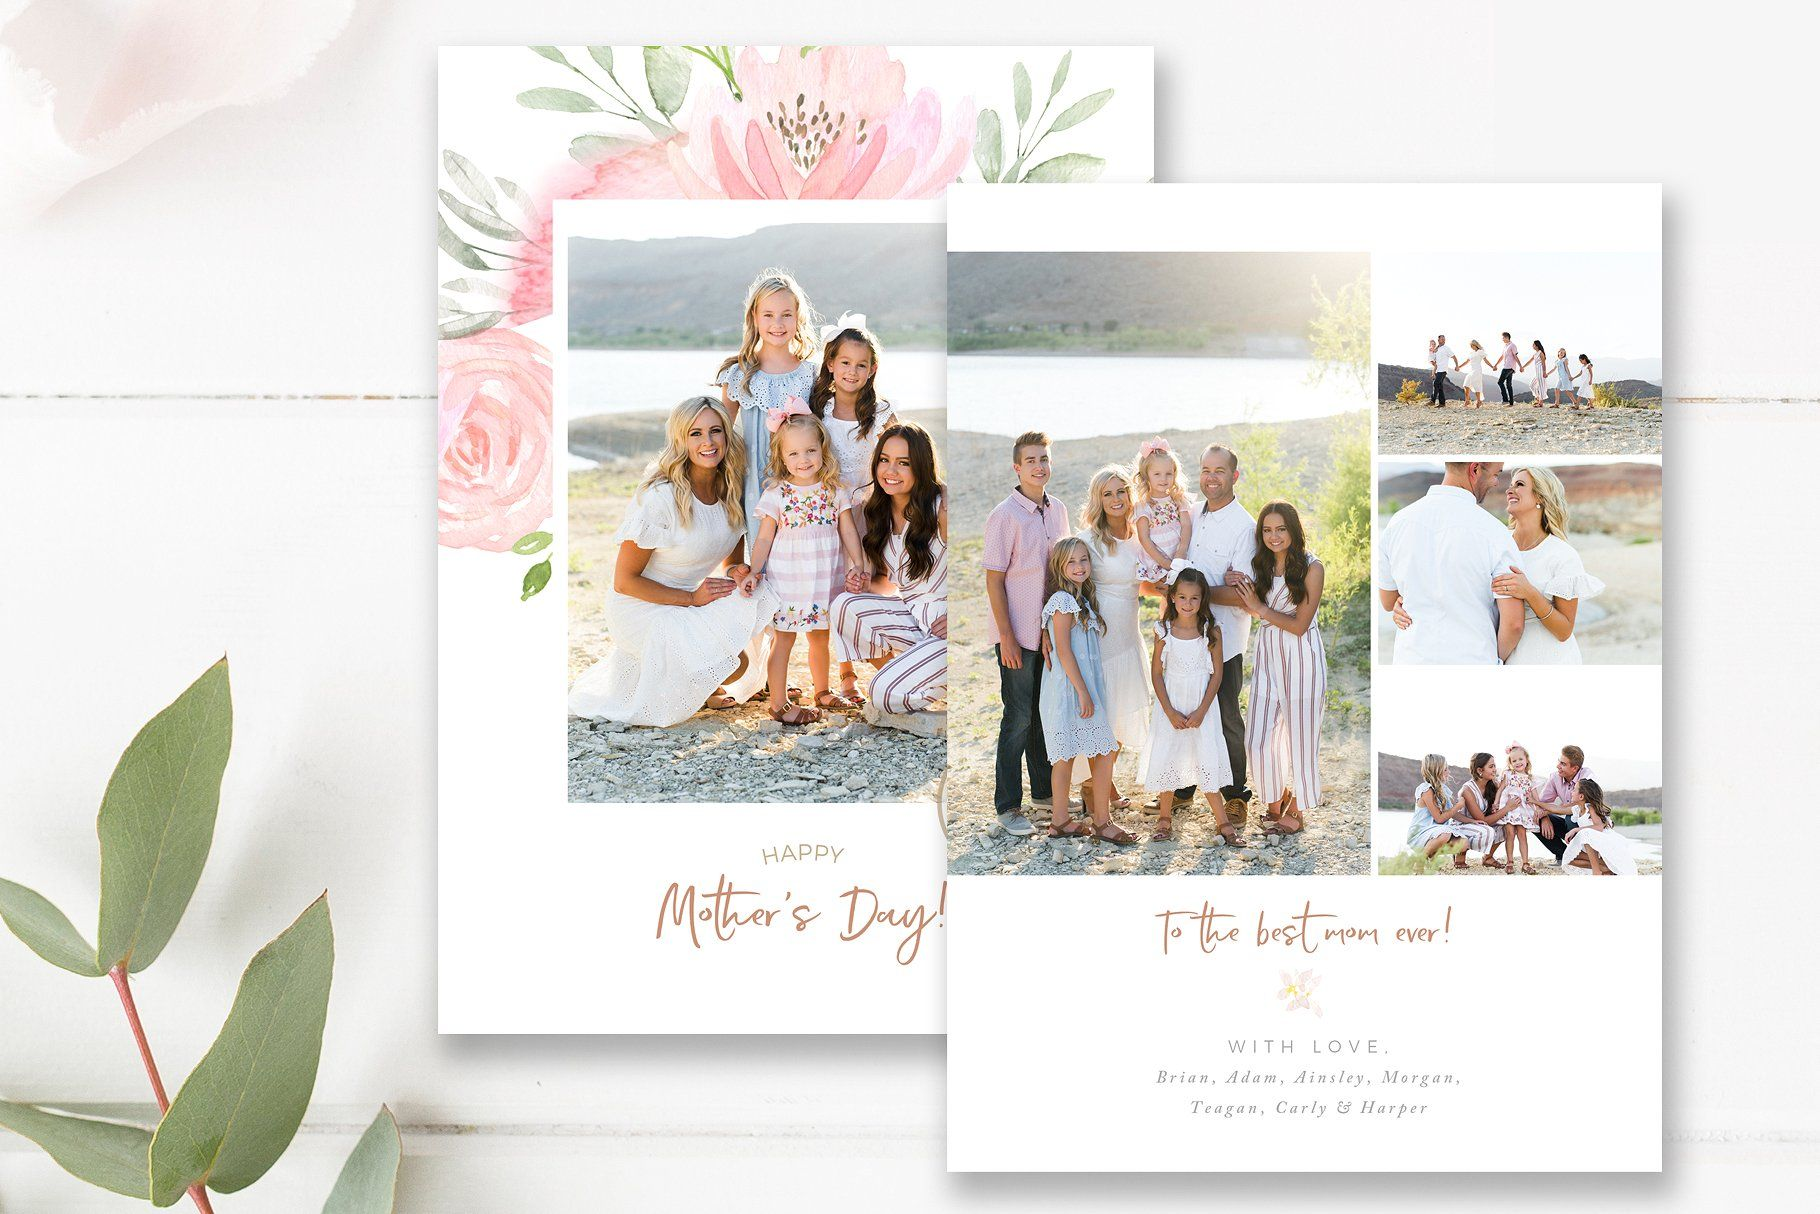 Mother S Day Photo Card Template Photo Card Template Photoshop Template Design Card Template